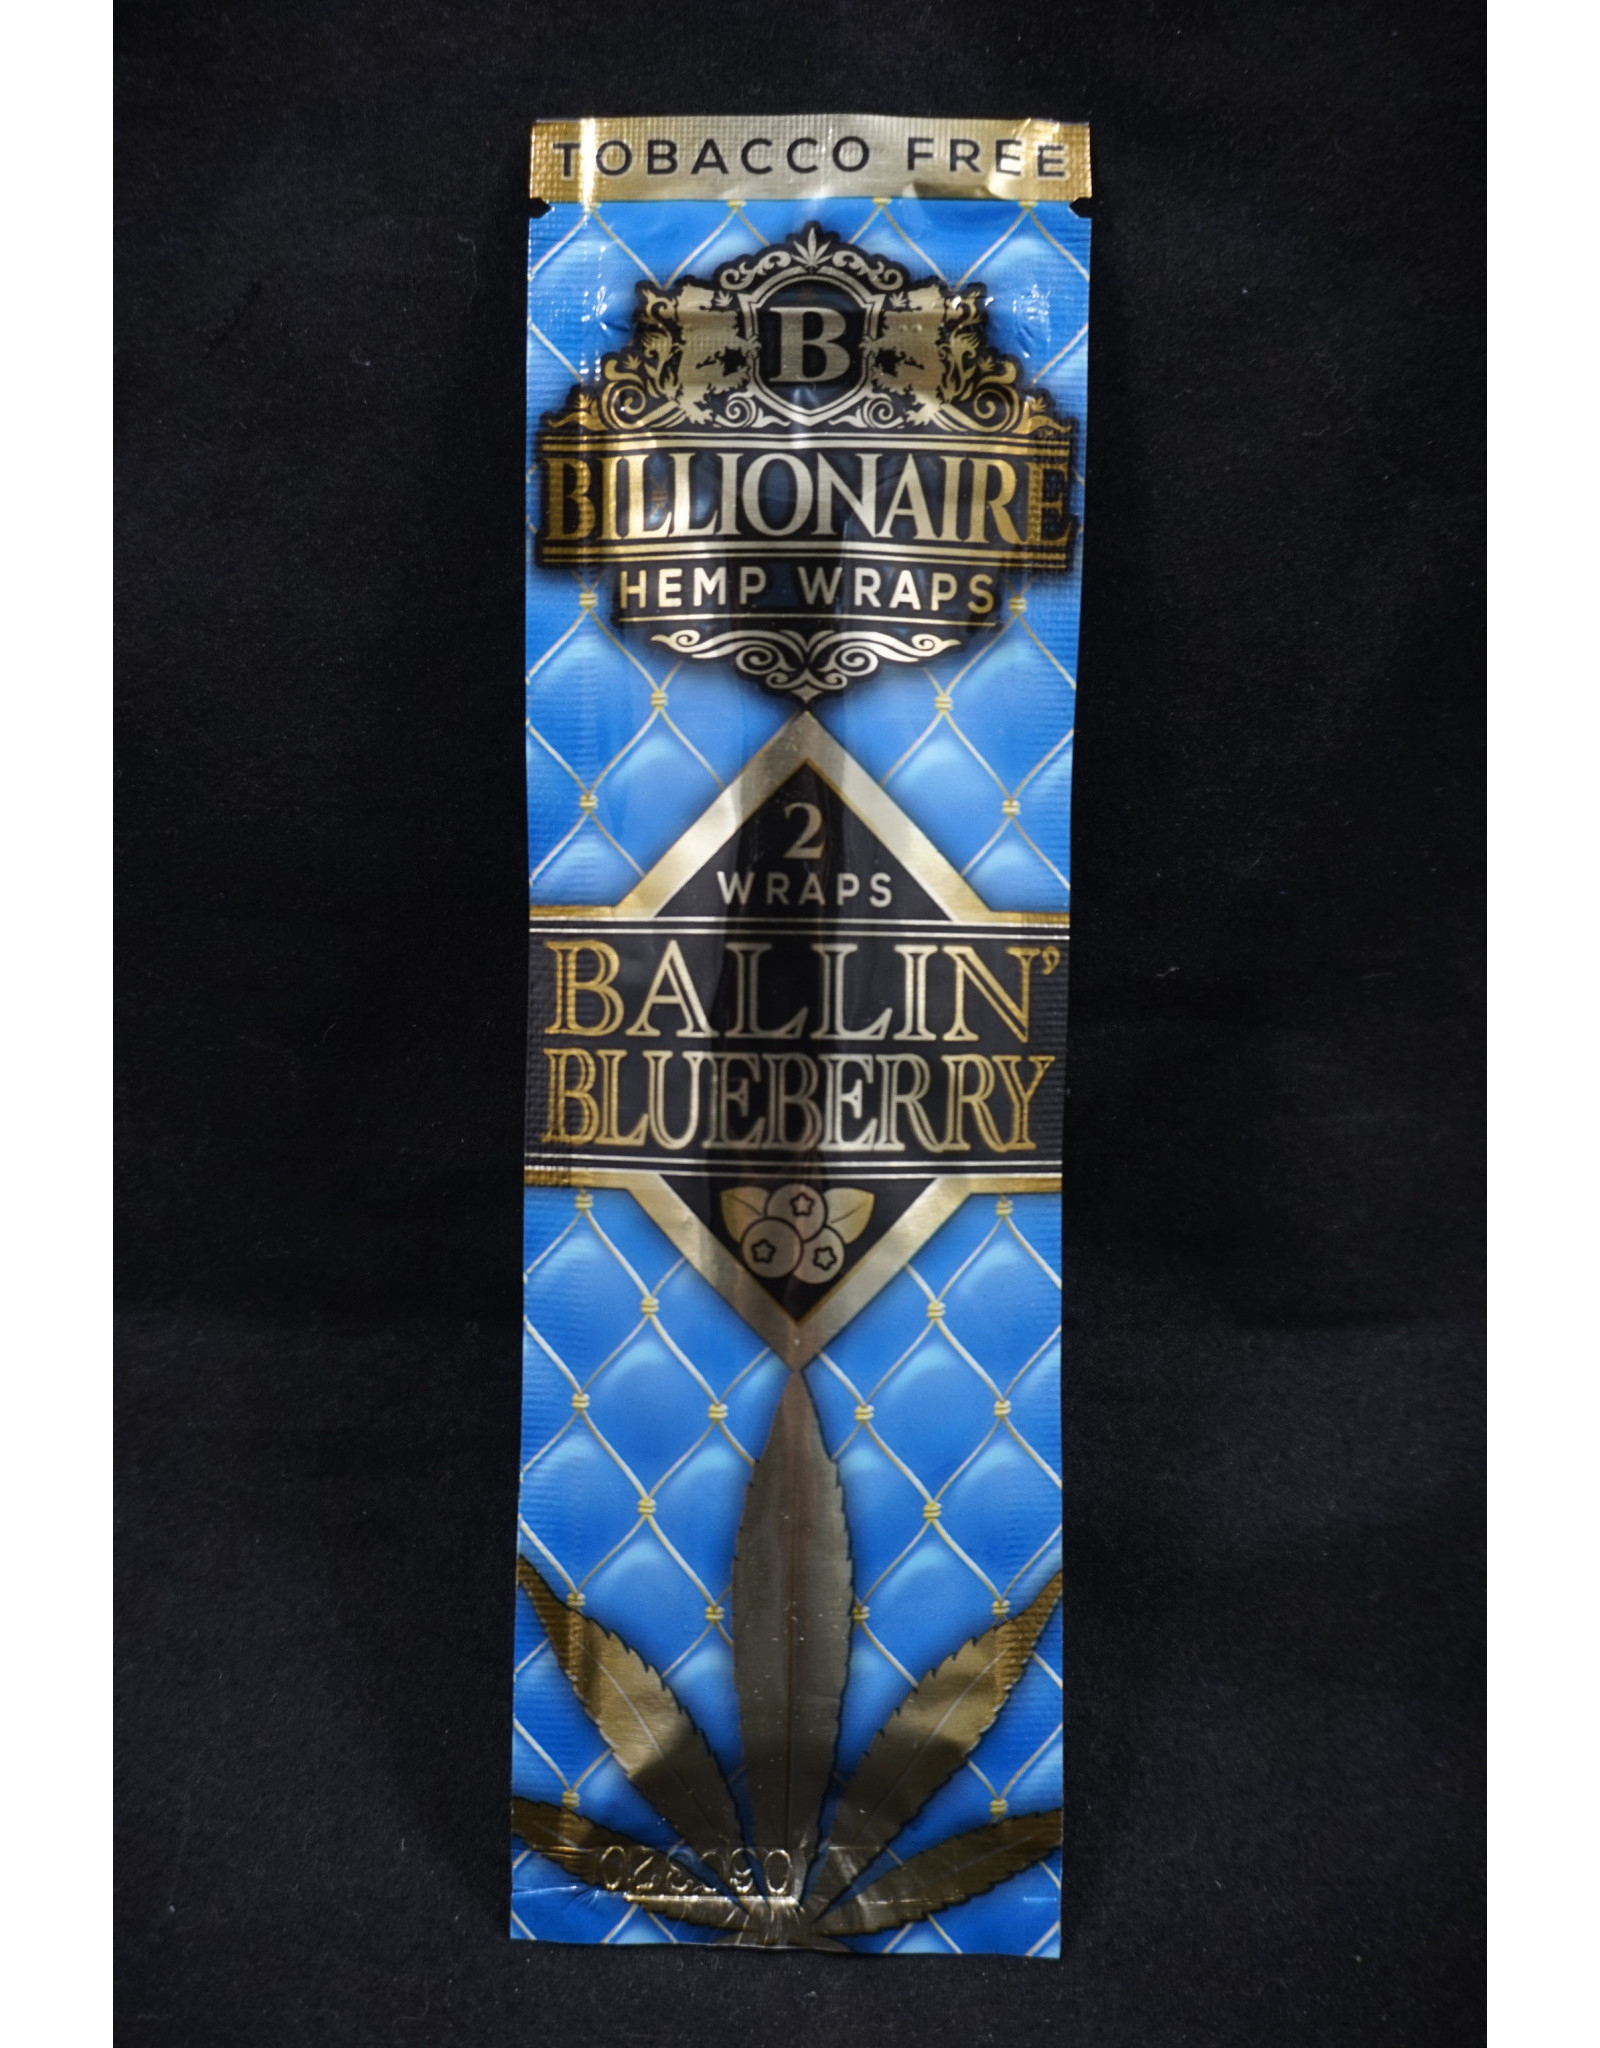 Billionaire Hemp Wraps - Blueberry